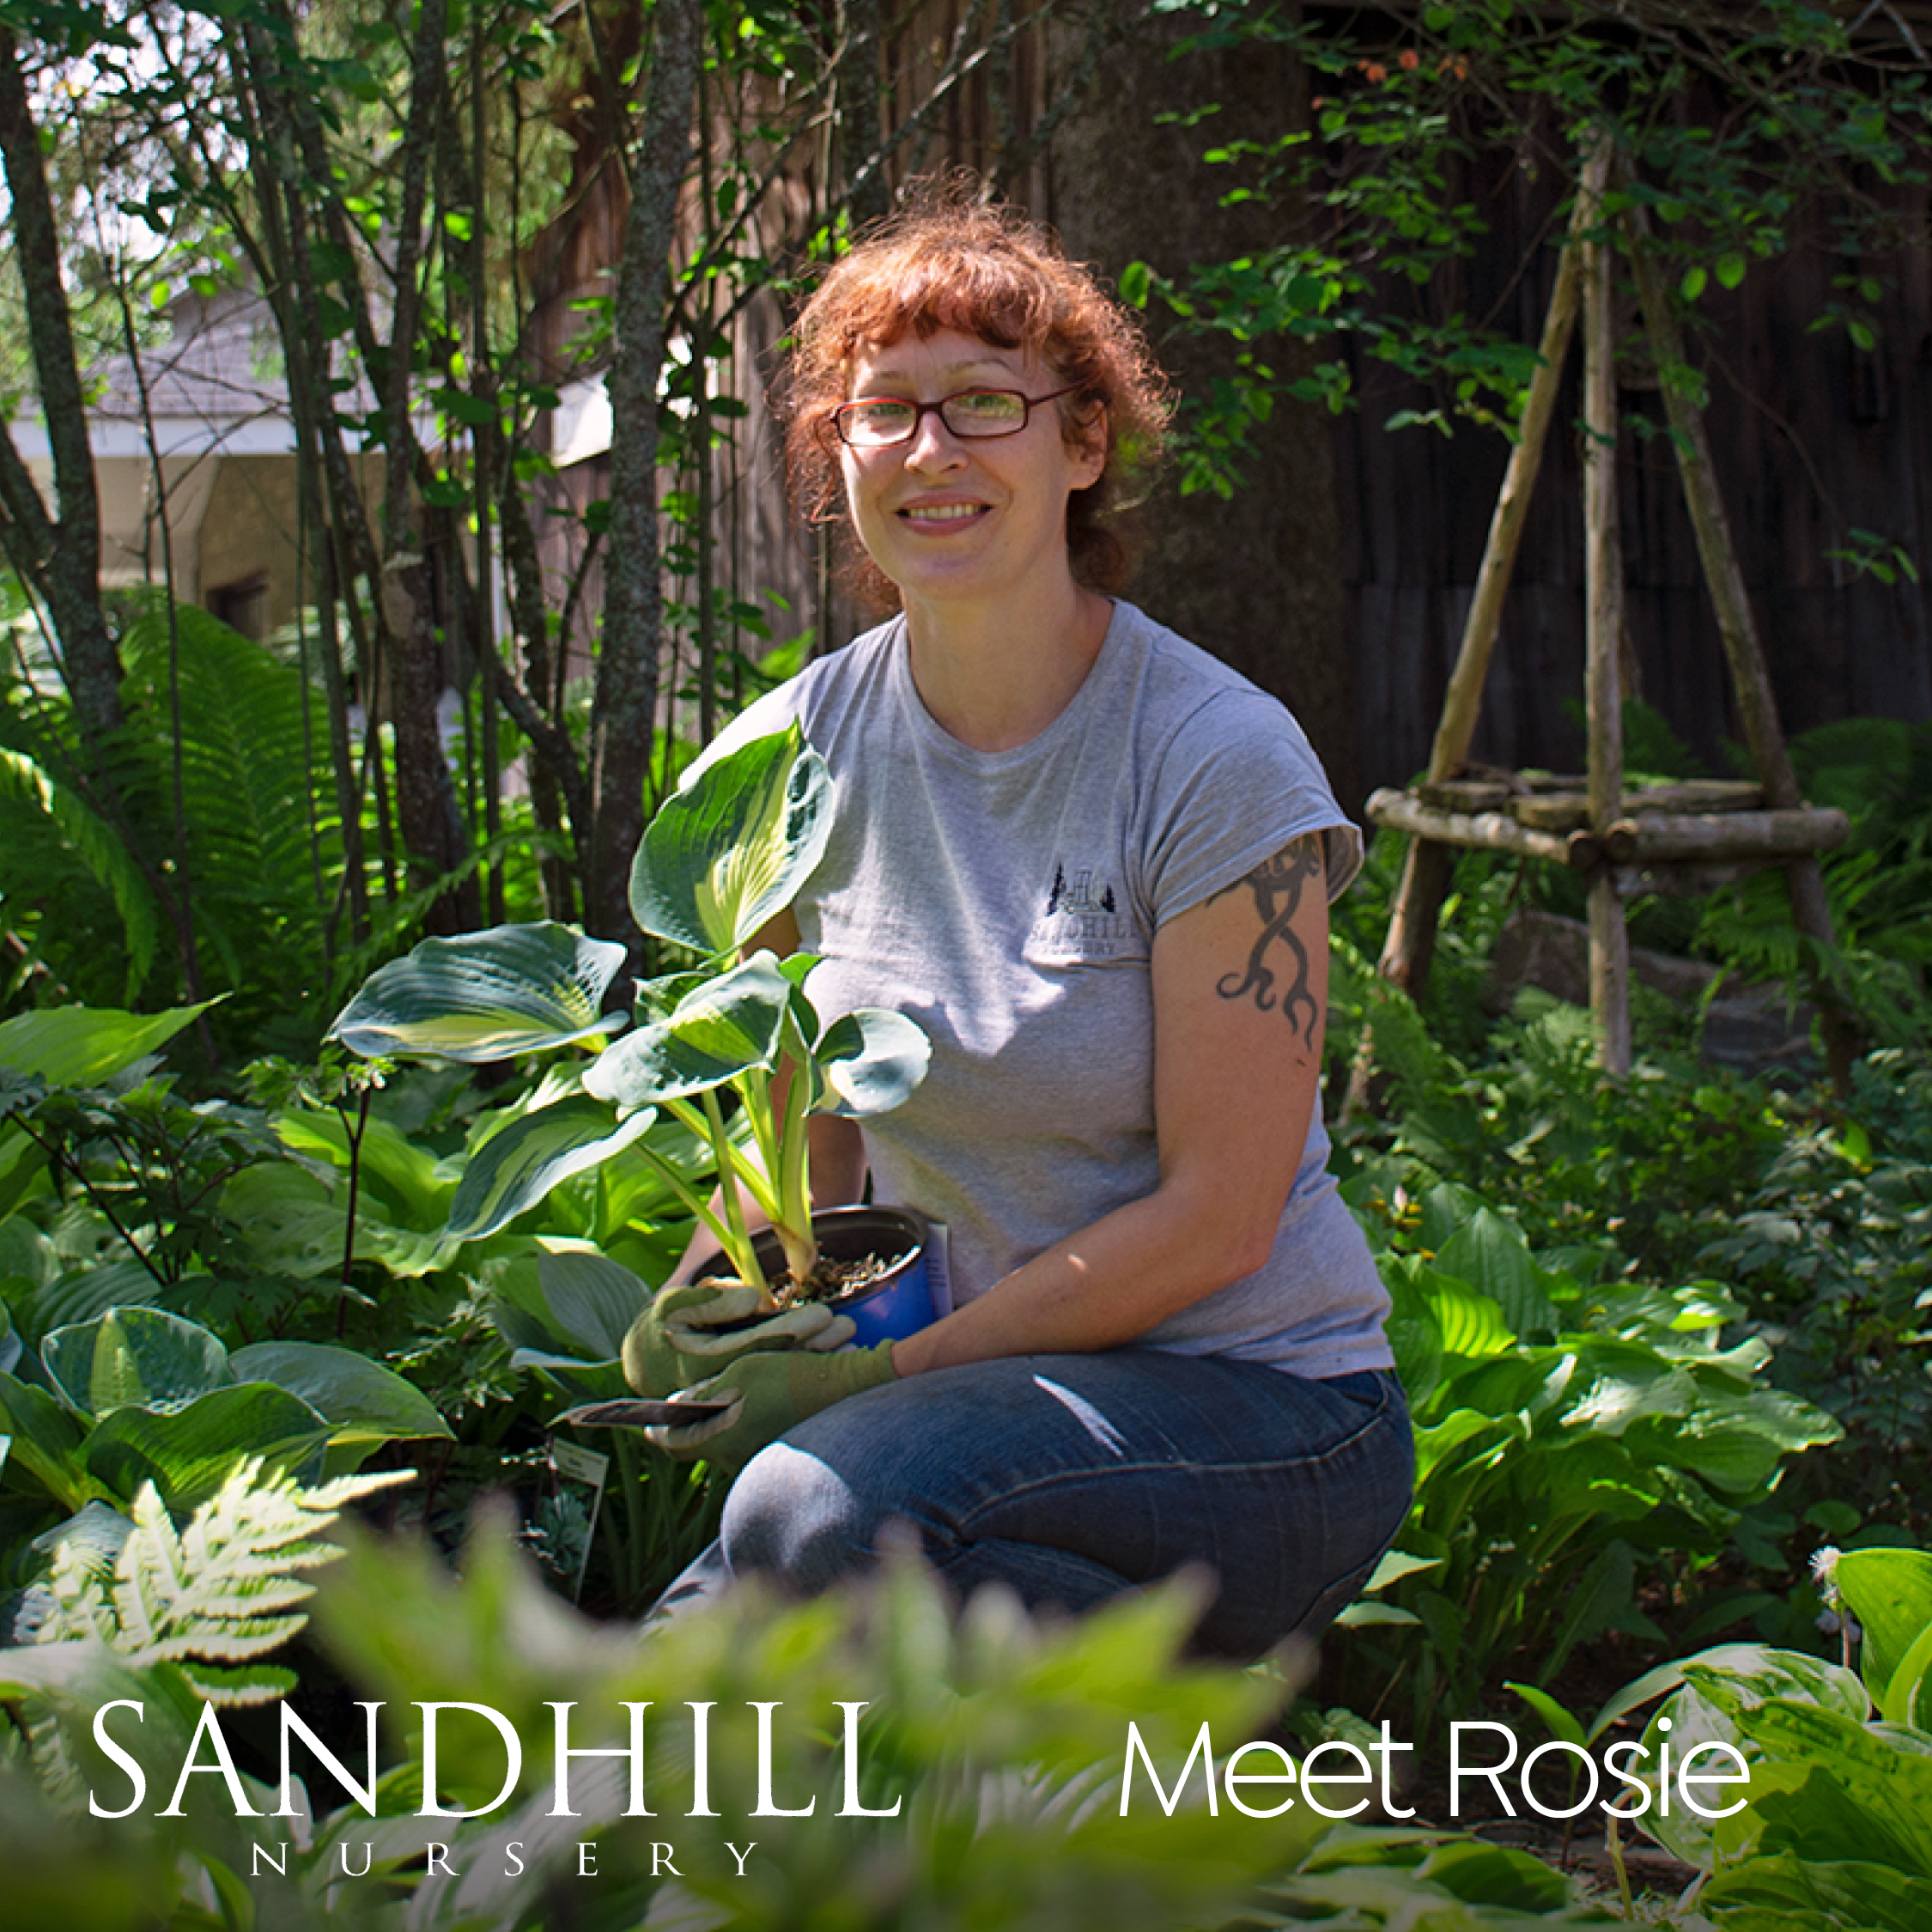 We believe that the staff at Sandhill make a trip to our nursery both unique and educational! Looking for creative solutions and design tips? Rosie's got great ideas on what plants pair well together to create a unique and eye-catching garden!